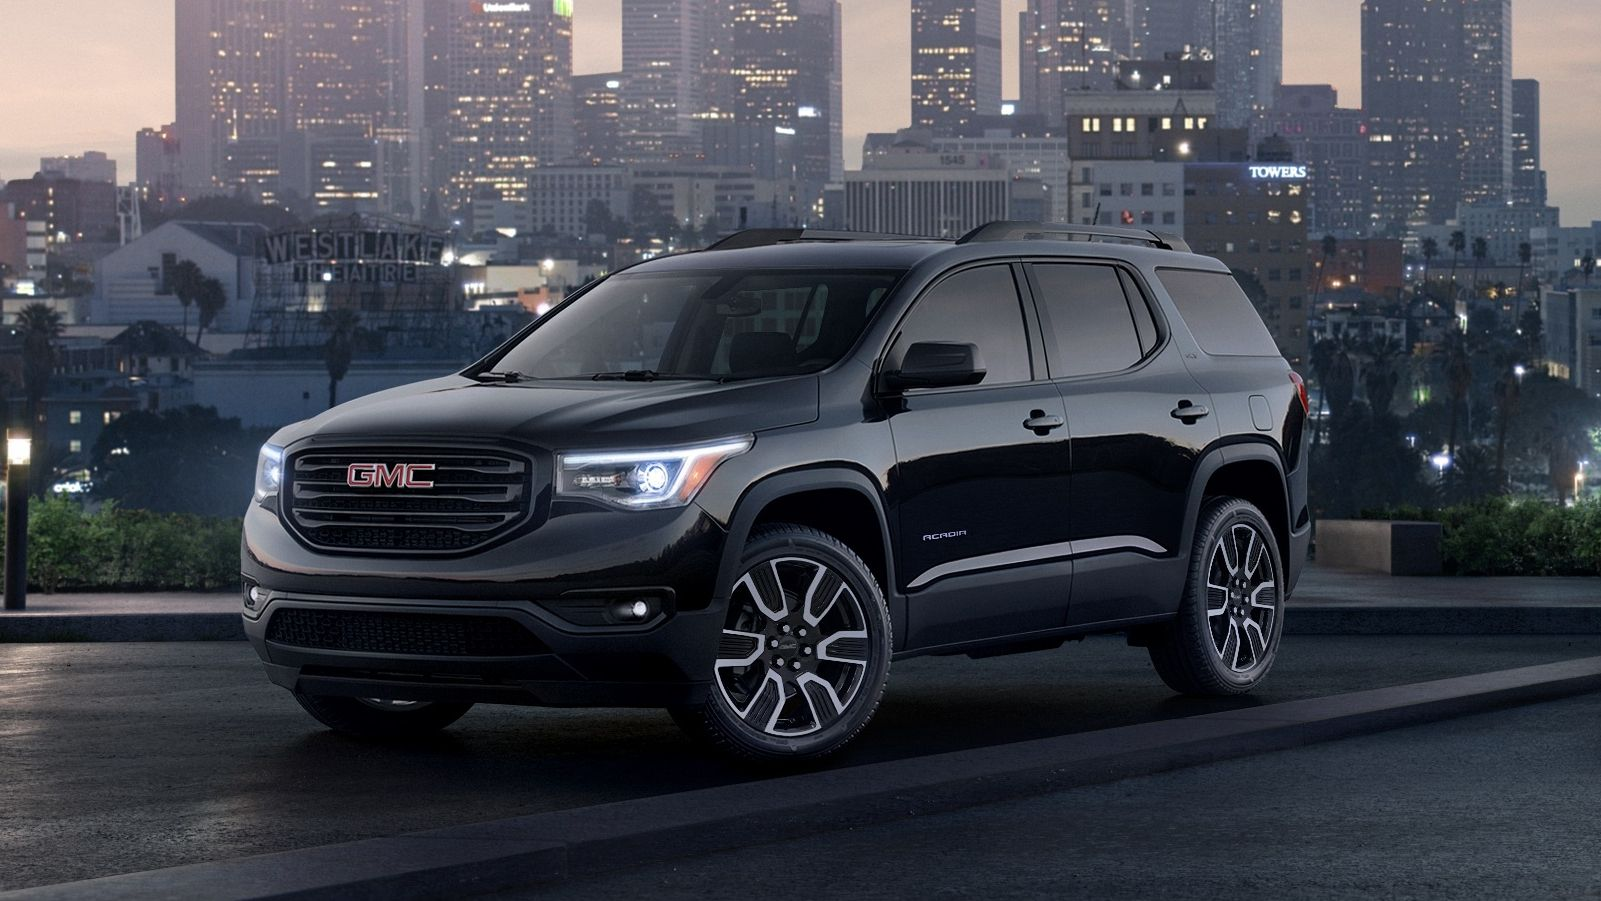 2019 Gmc Acadia Black Edition Top Speed Gmc Terrain Acadia